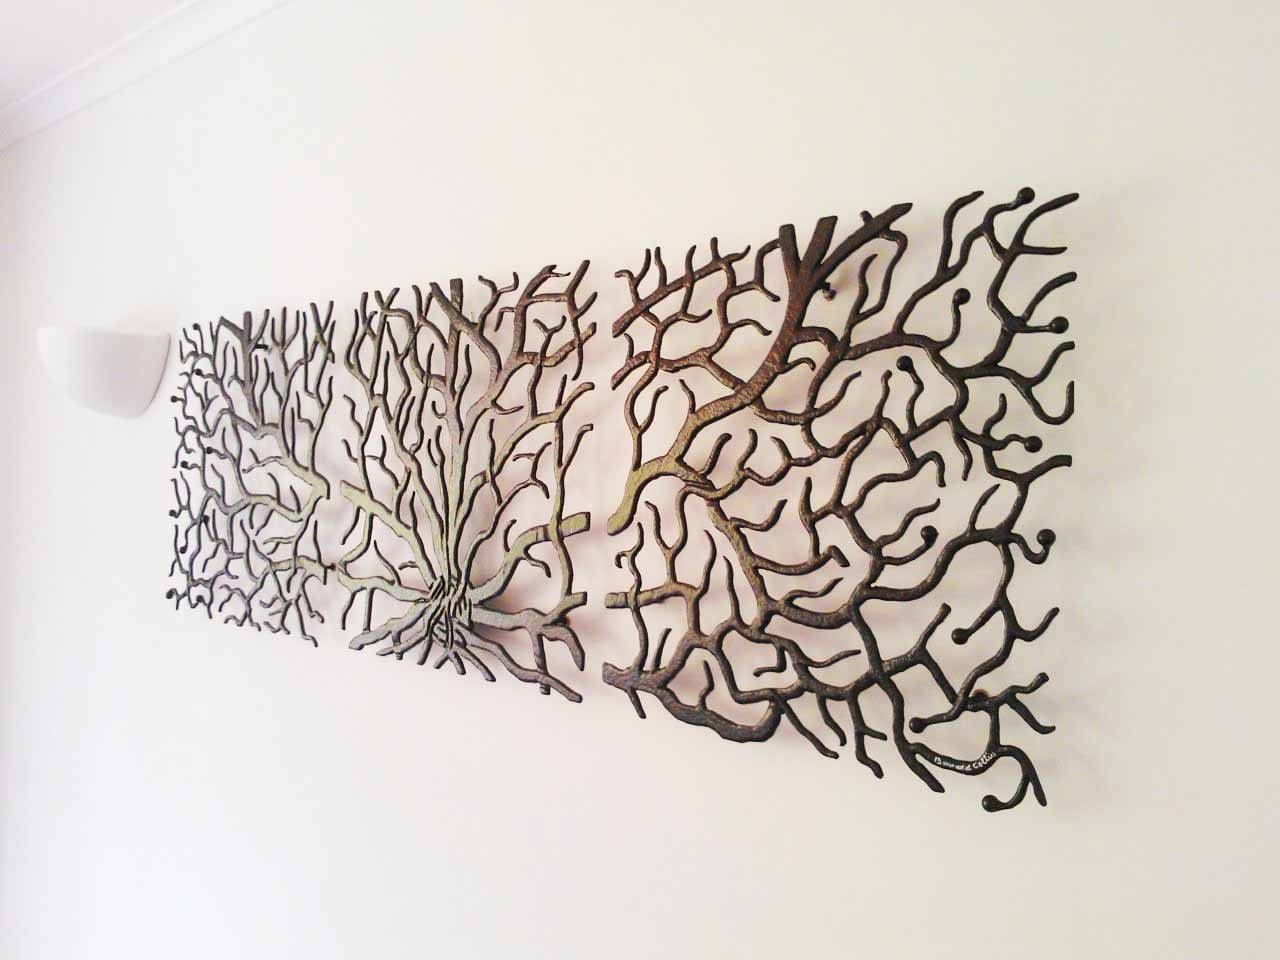 Wall Art Designs: Coral Wall Art Magnificent Metal Tree Wall Art Intended For Most Up To Date Red Flower Metal Wall Art (View 19 of 25)